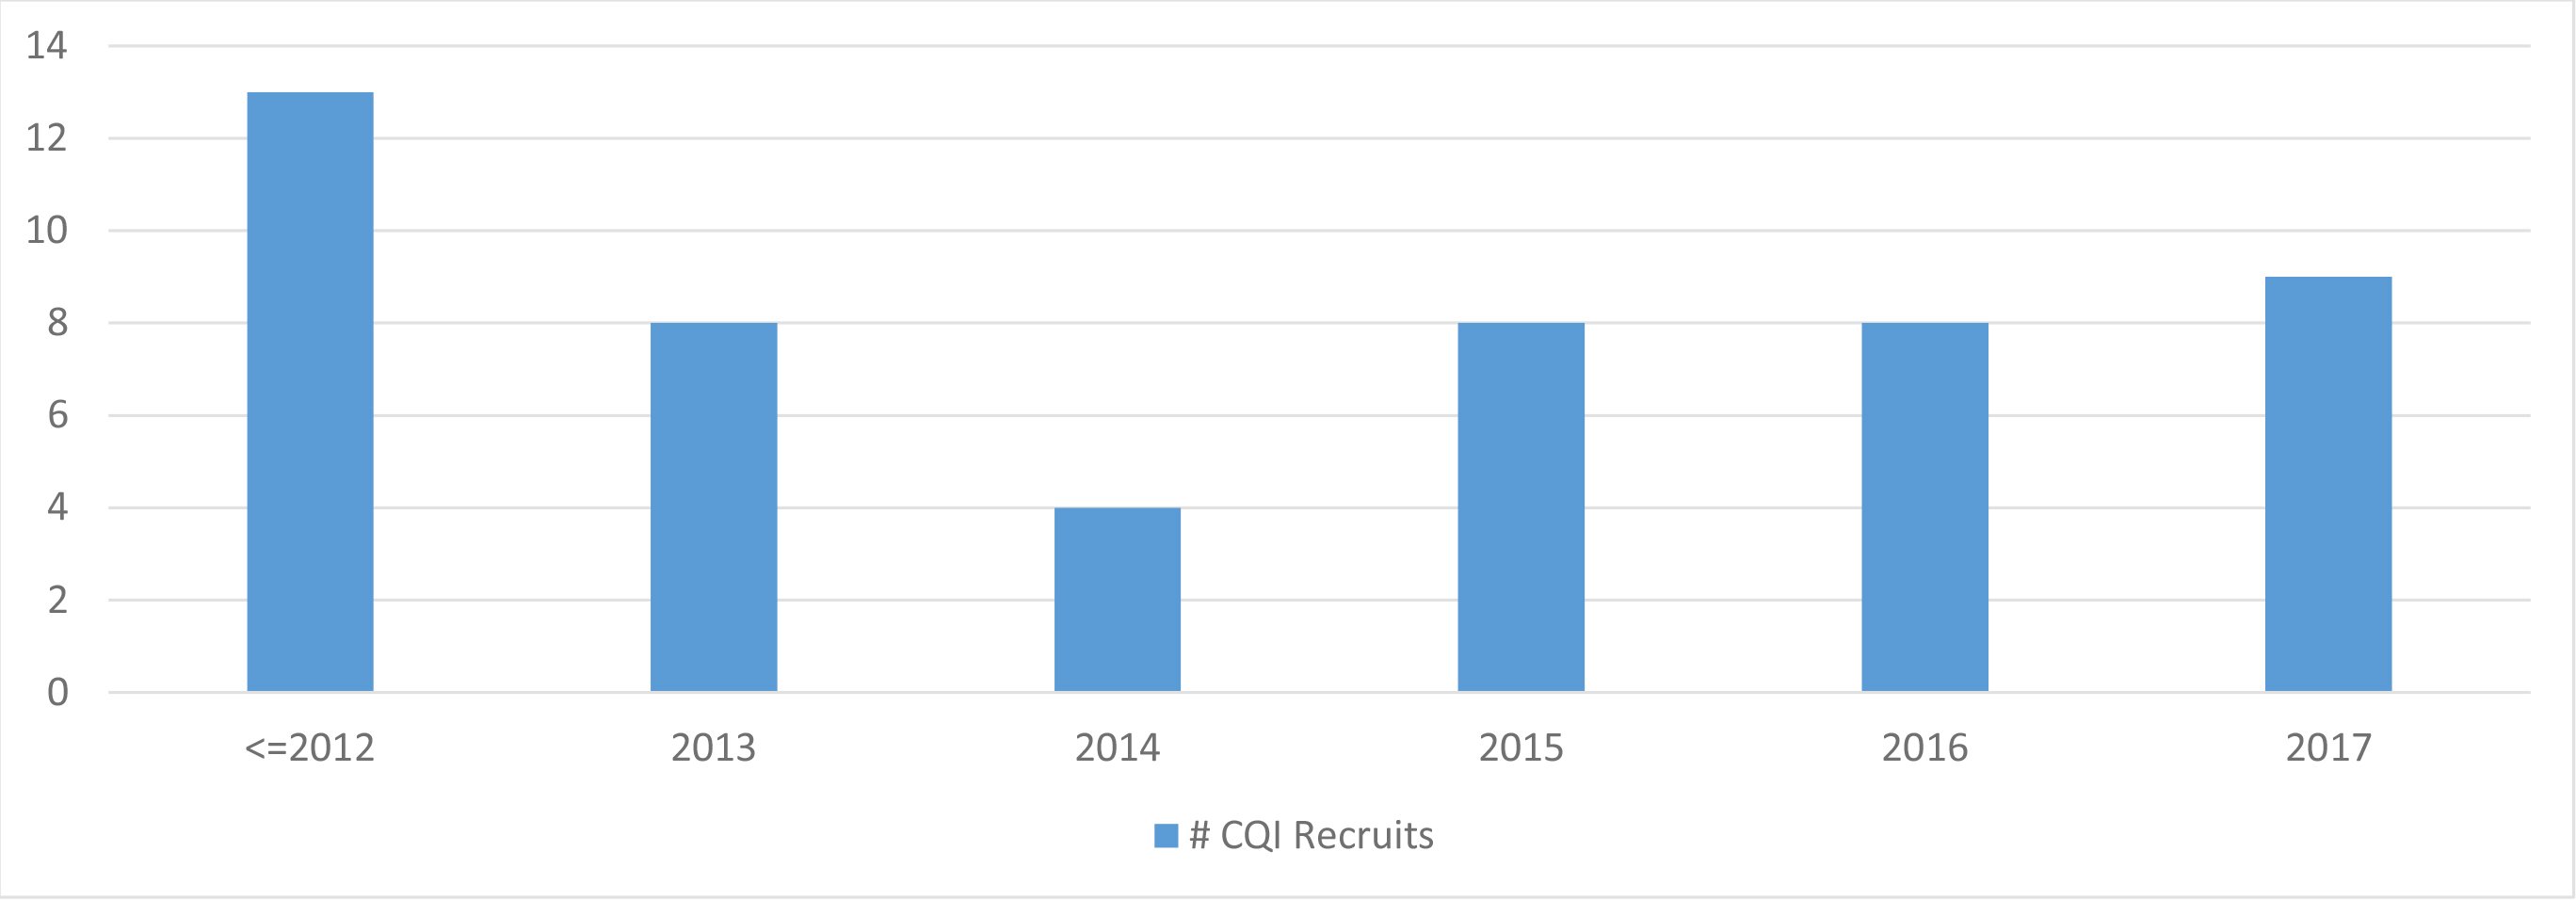 Table: Number of CQI Recruits per Year (to 2017)